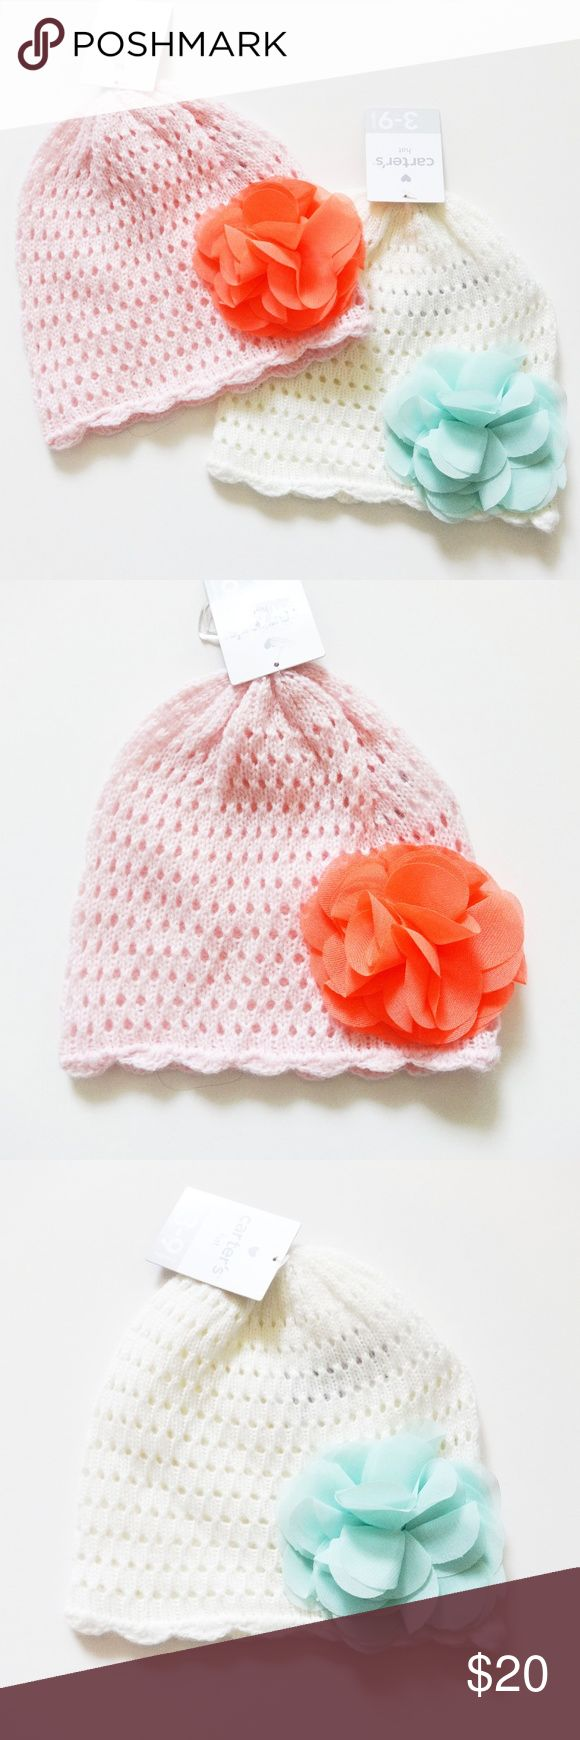 NWT Carters Baby Girl knit hats NWT Carters Baby Girl knit hats. silky flowers. Light pink with hot coral flower. White with mint green flower. Both 3-9m. Bought these when we were trying to get pregnant. Found out we cant have babies so I don't need them anymore. Carter's Accessories Hats